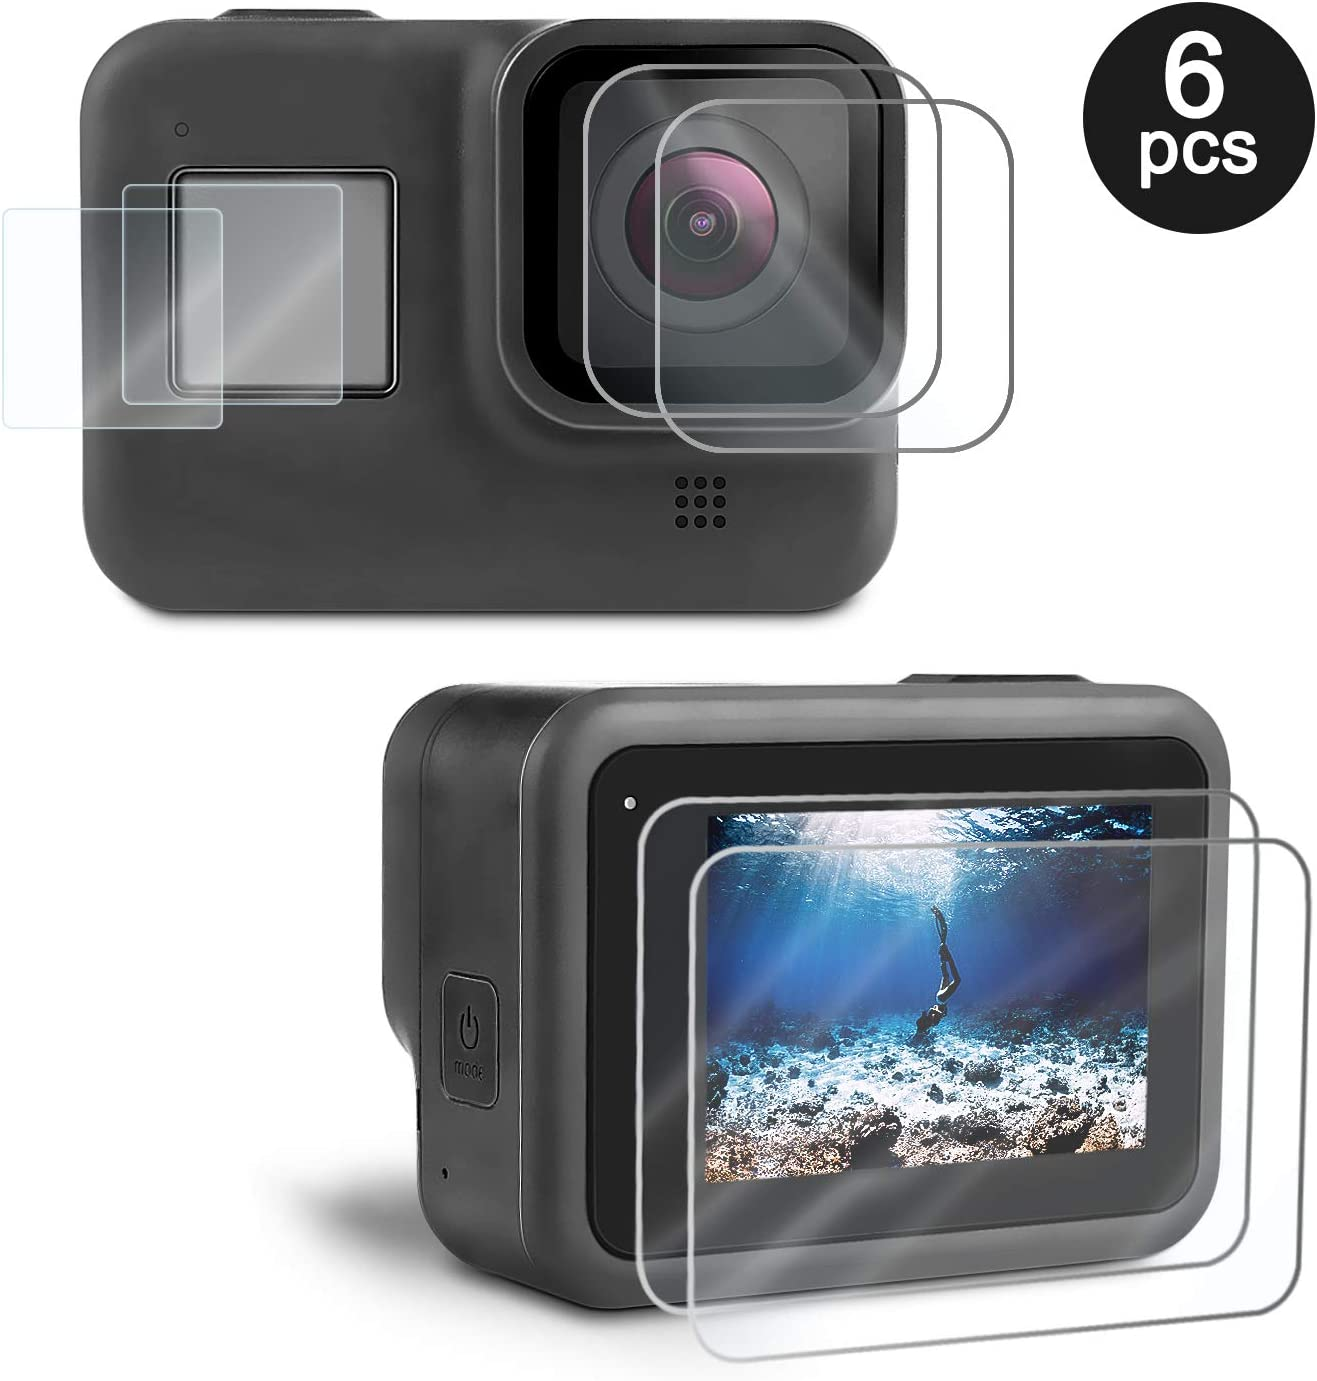 Kupton Screen Protector for GoPro Hero 8 Black 6 Pcs, Ultra Clear Tempered Glass Screen Protector + Lens Protector + Small Display Film + Installation Pack Accessories for Go Pro Hero8 Action Camera